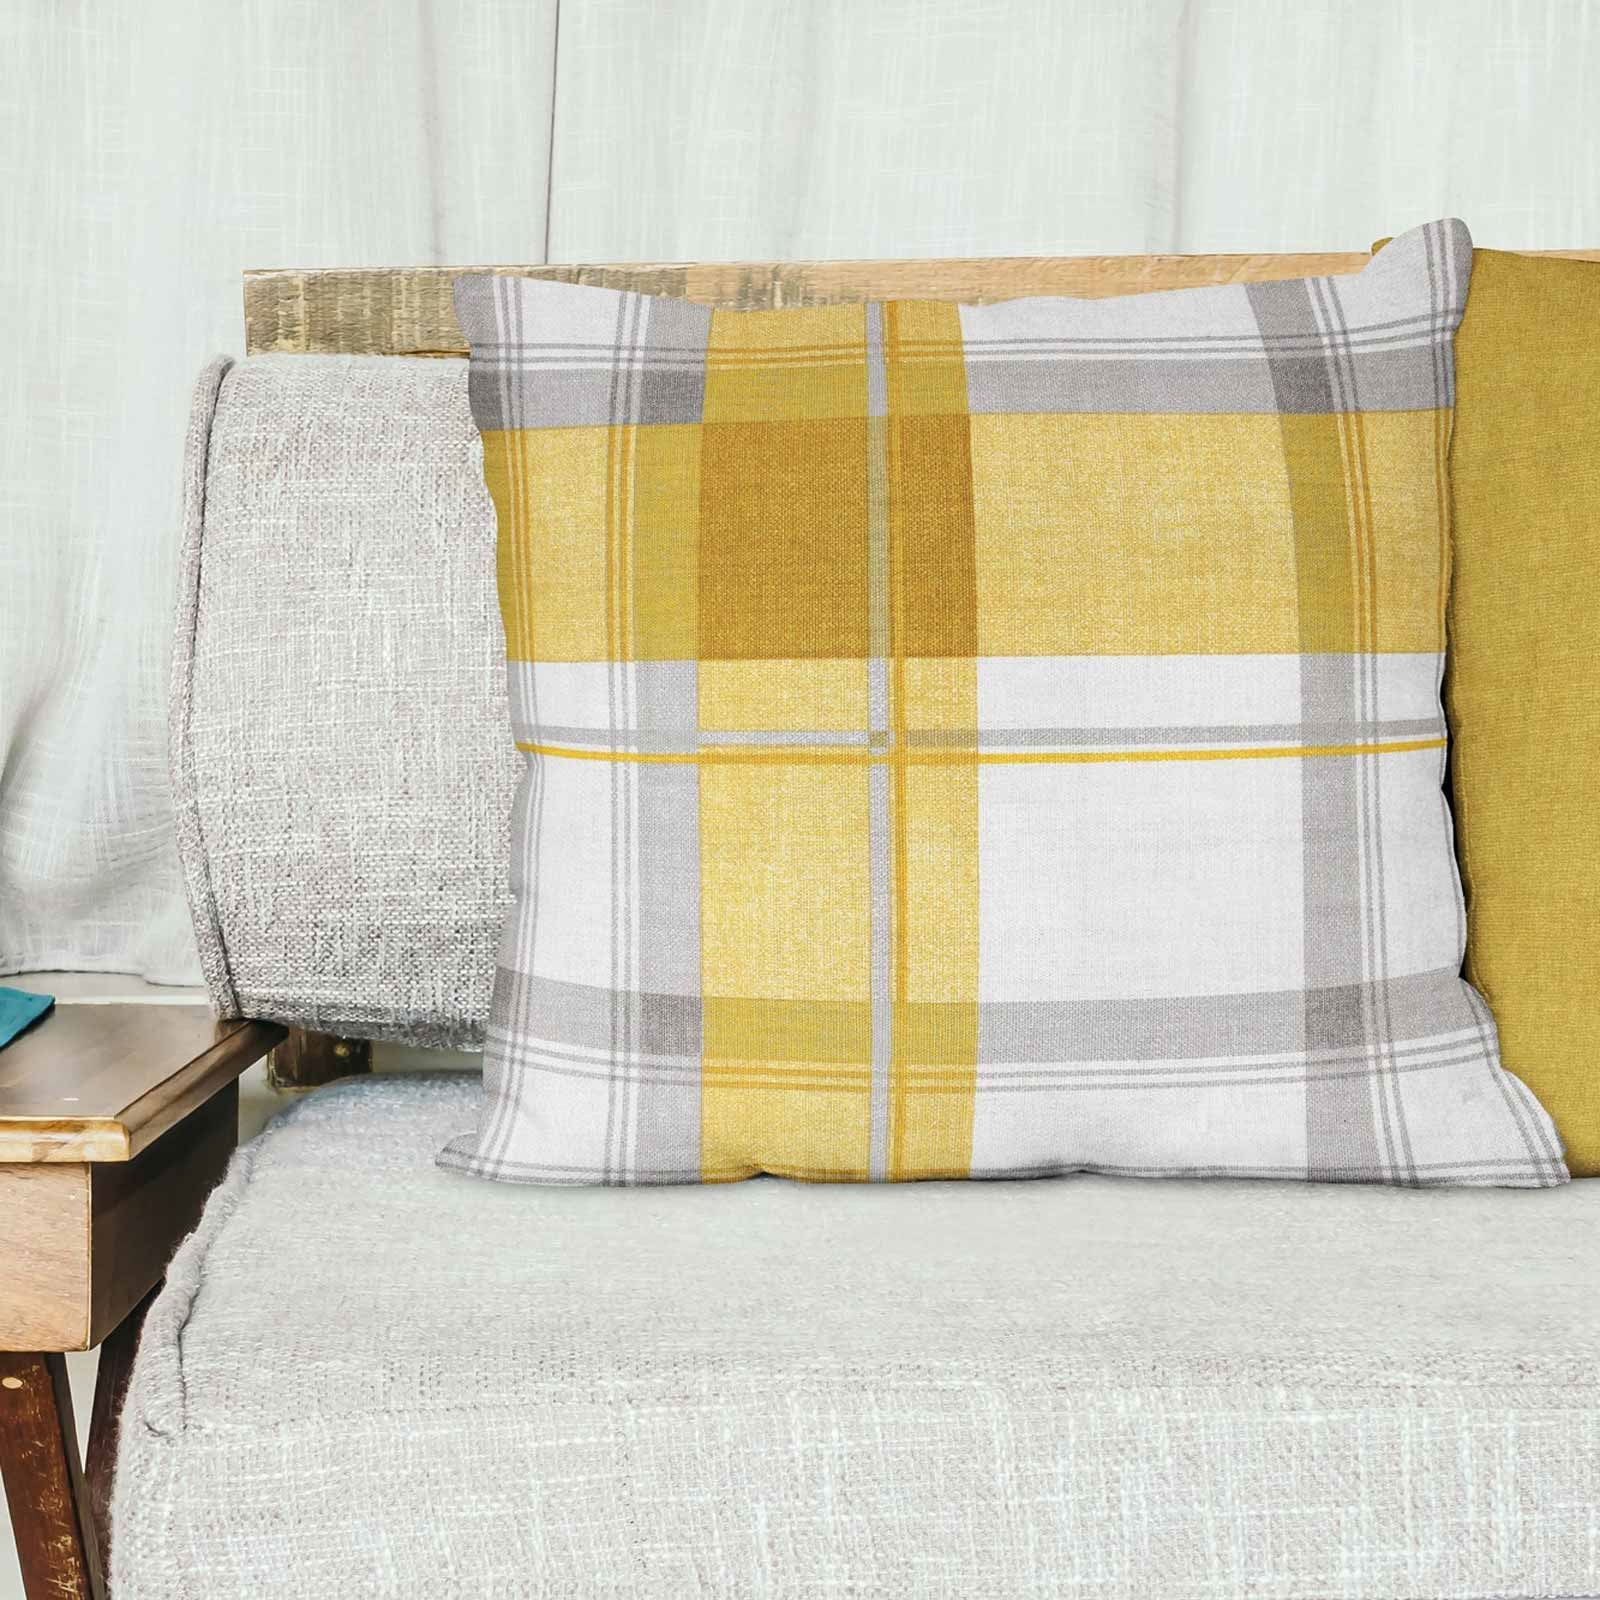 Grey-Ochre-Mustard-Cushion-Cover-Collection-17-034-18-034-Covers-Filled-Cushions thumbnail 25